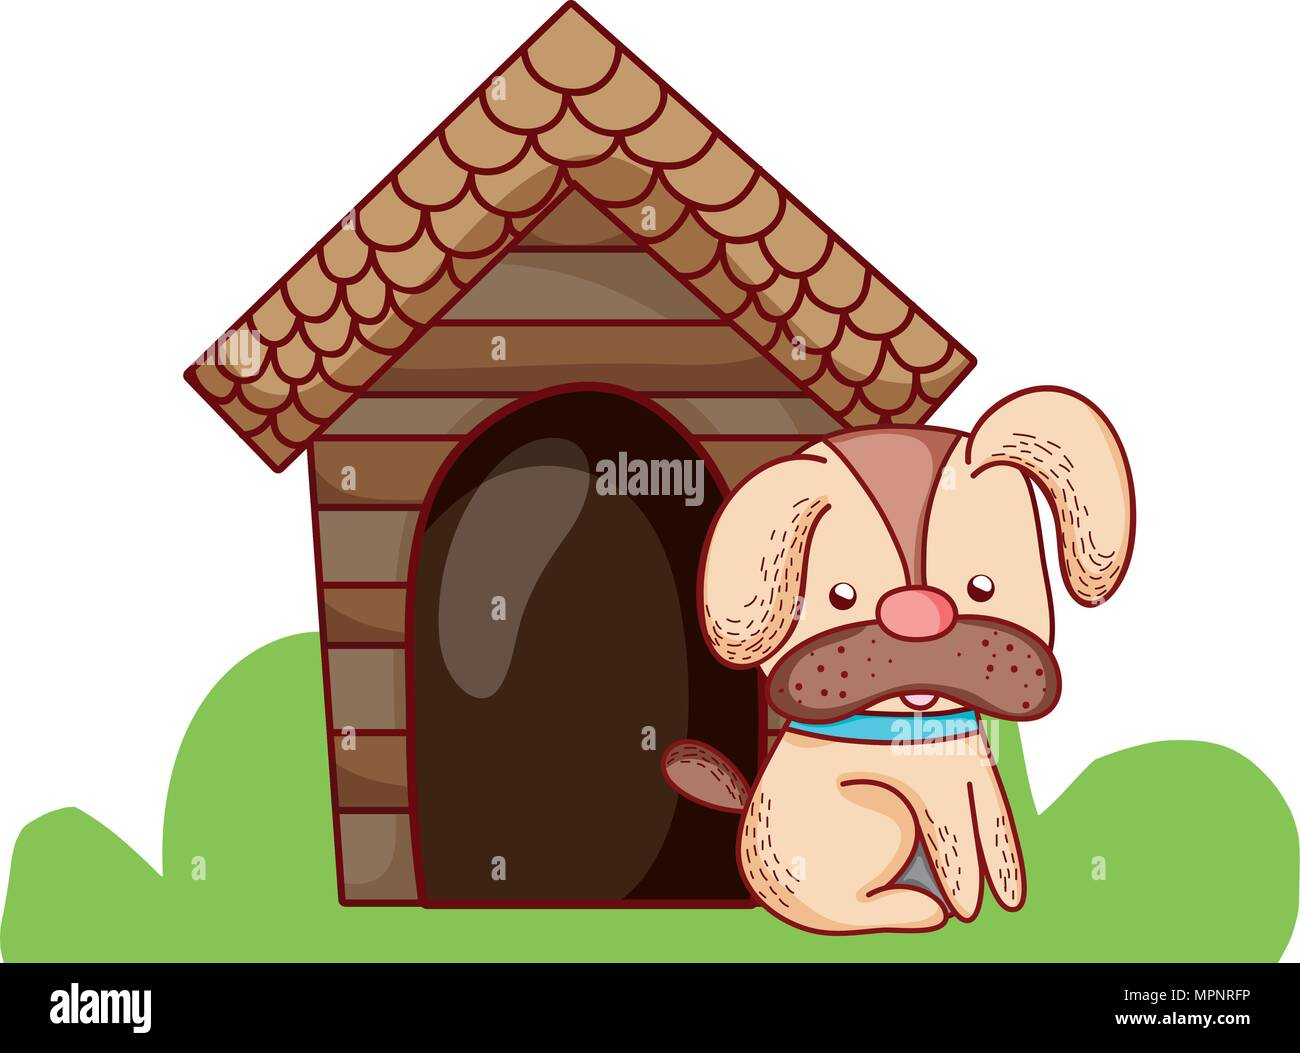 cute dog pet animal with house - Stock Image